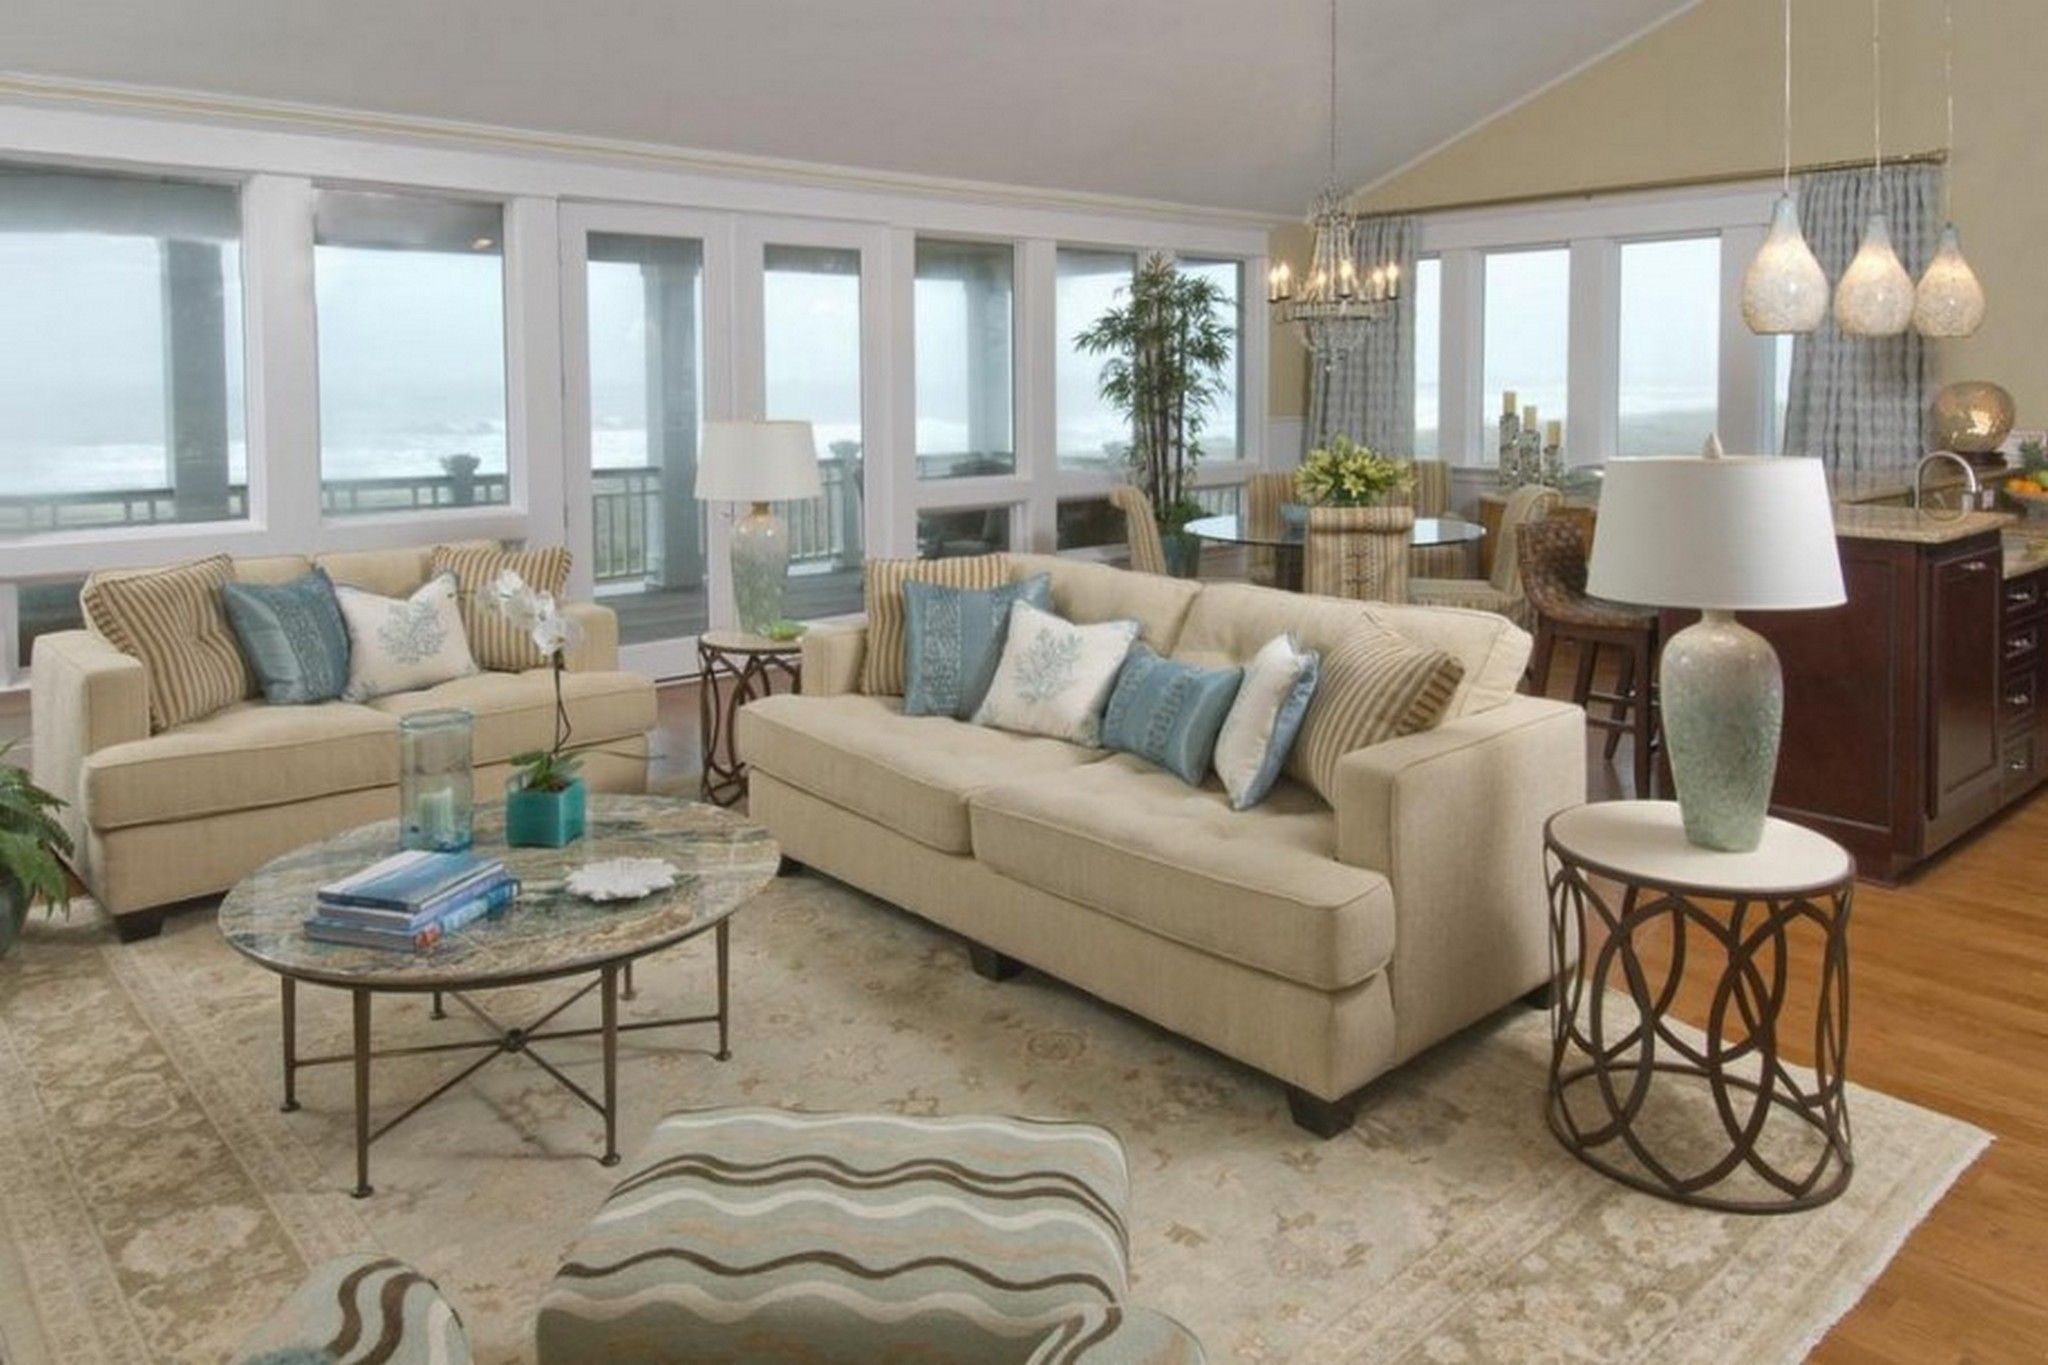 Living Room Rustic Beach Decorating Ideas For Living Room With